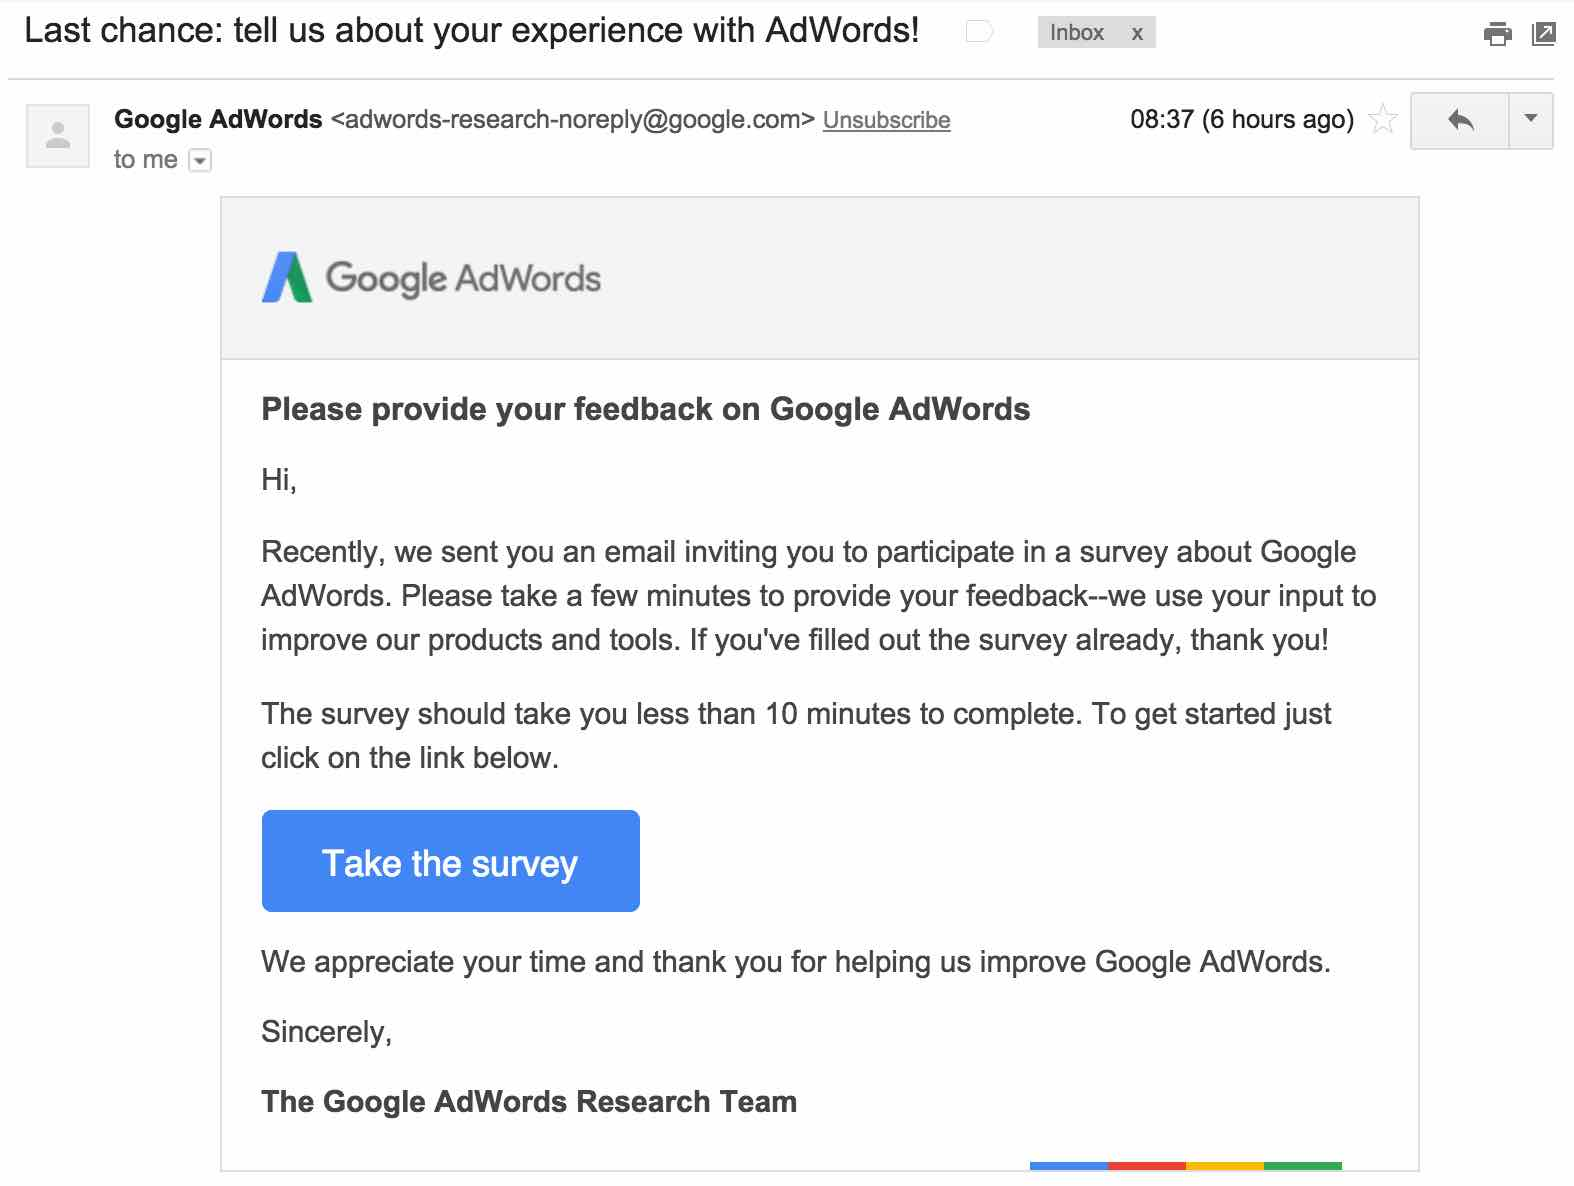 Please provide your feedback on Google AdWords